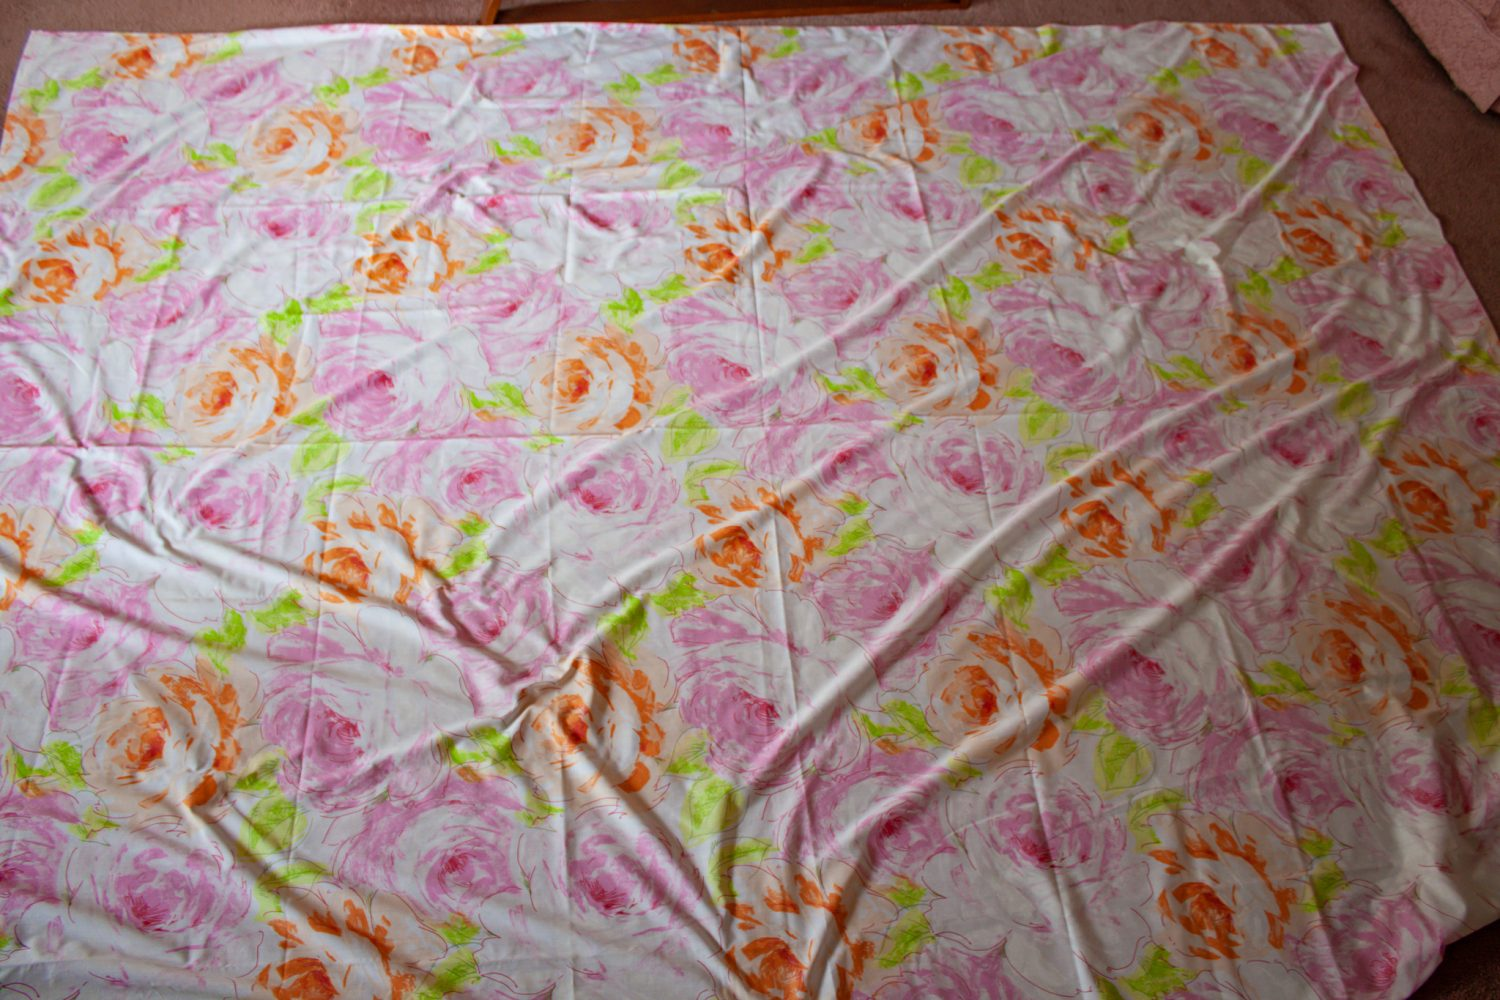 Flat floral patterned sheet laid out on the floor